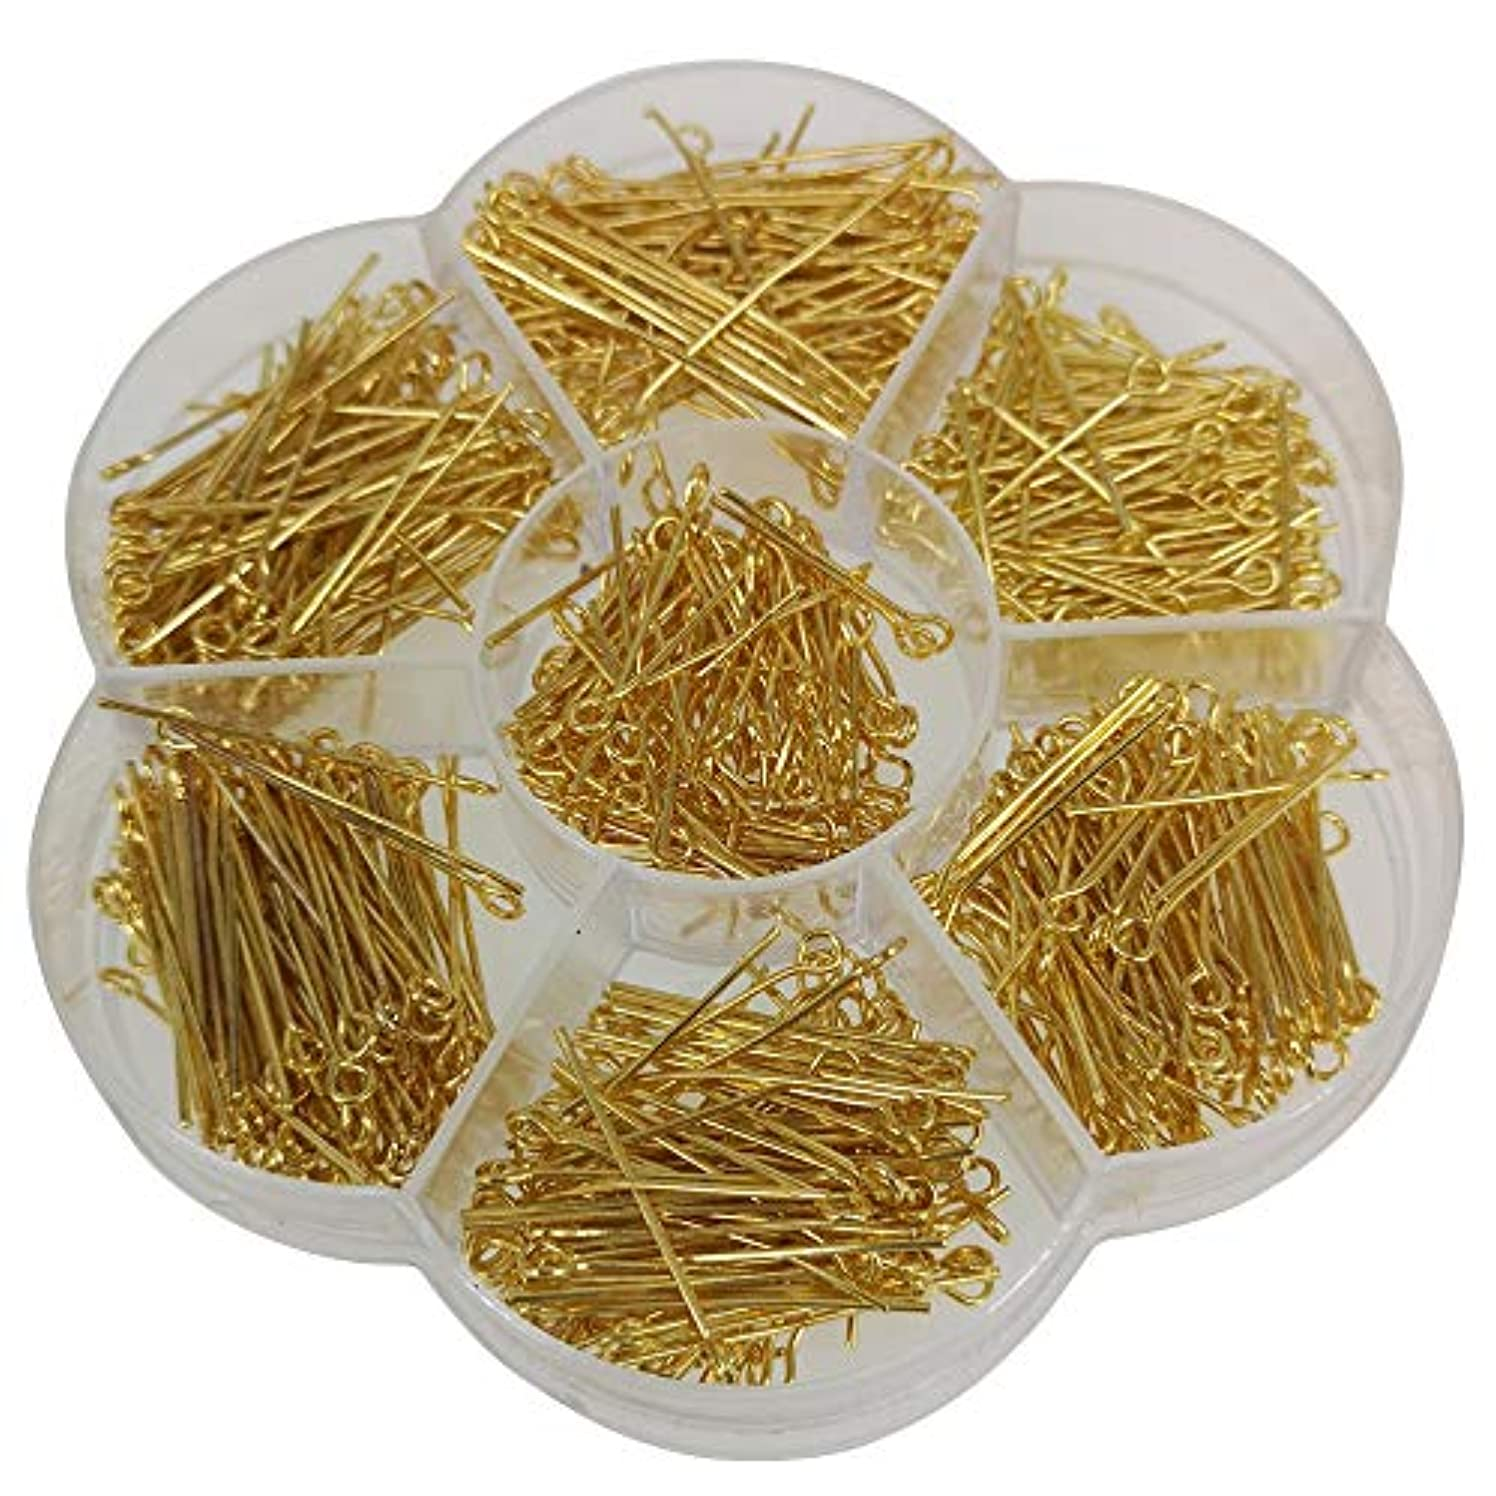 Chenkou Craft 700pcs Assorted of 7 Sizes Gold Mix Eye Pins for Jewelry Making (Gold, Mix)